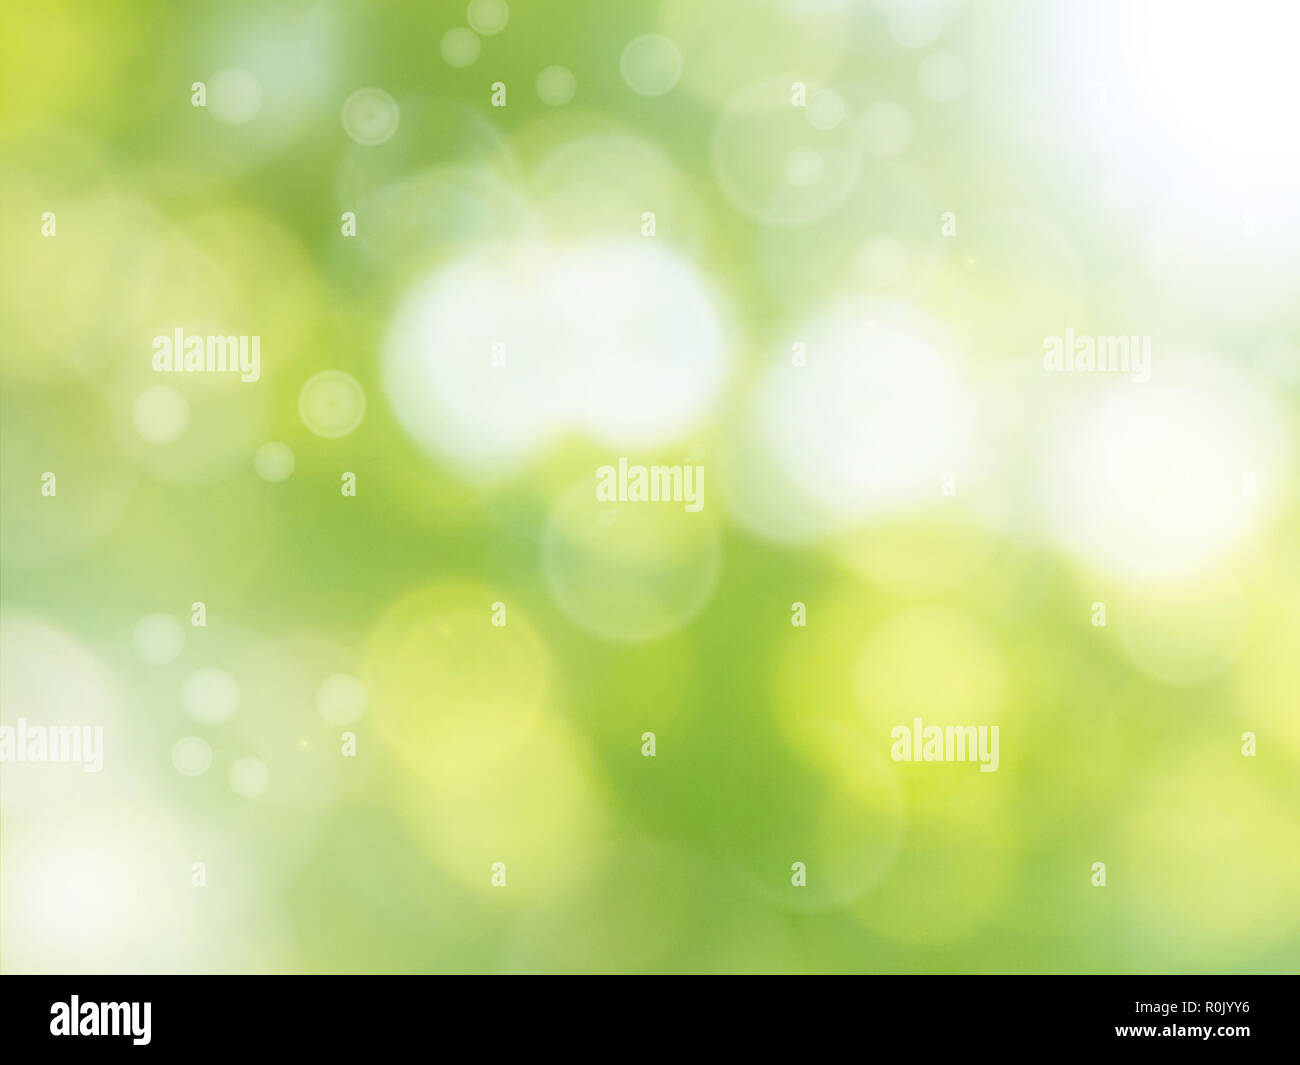 Fresh green spring blurred background - Stock Image